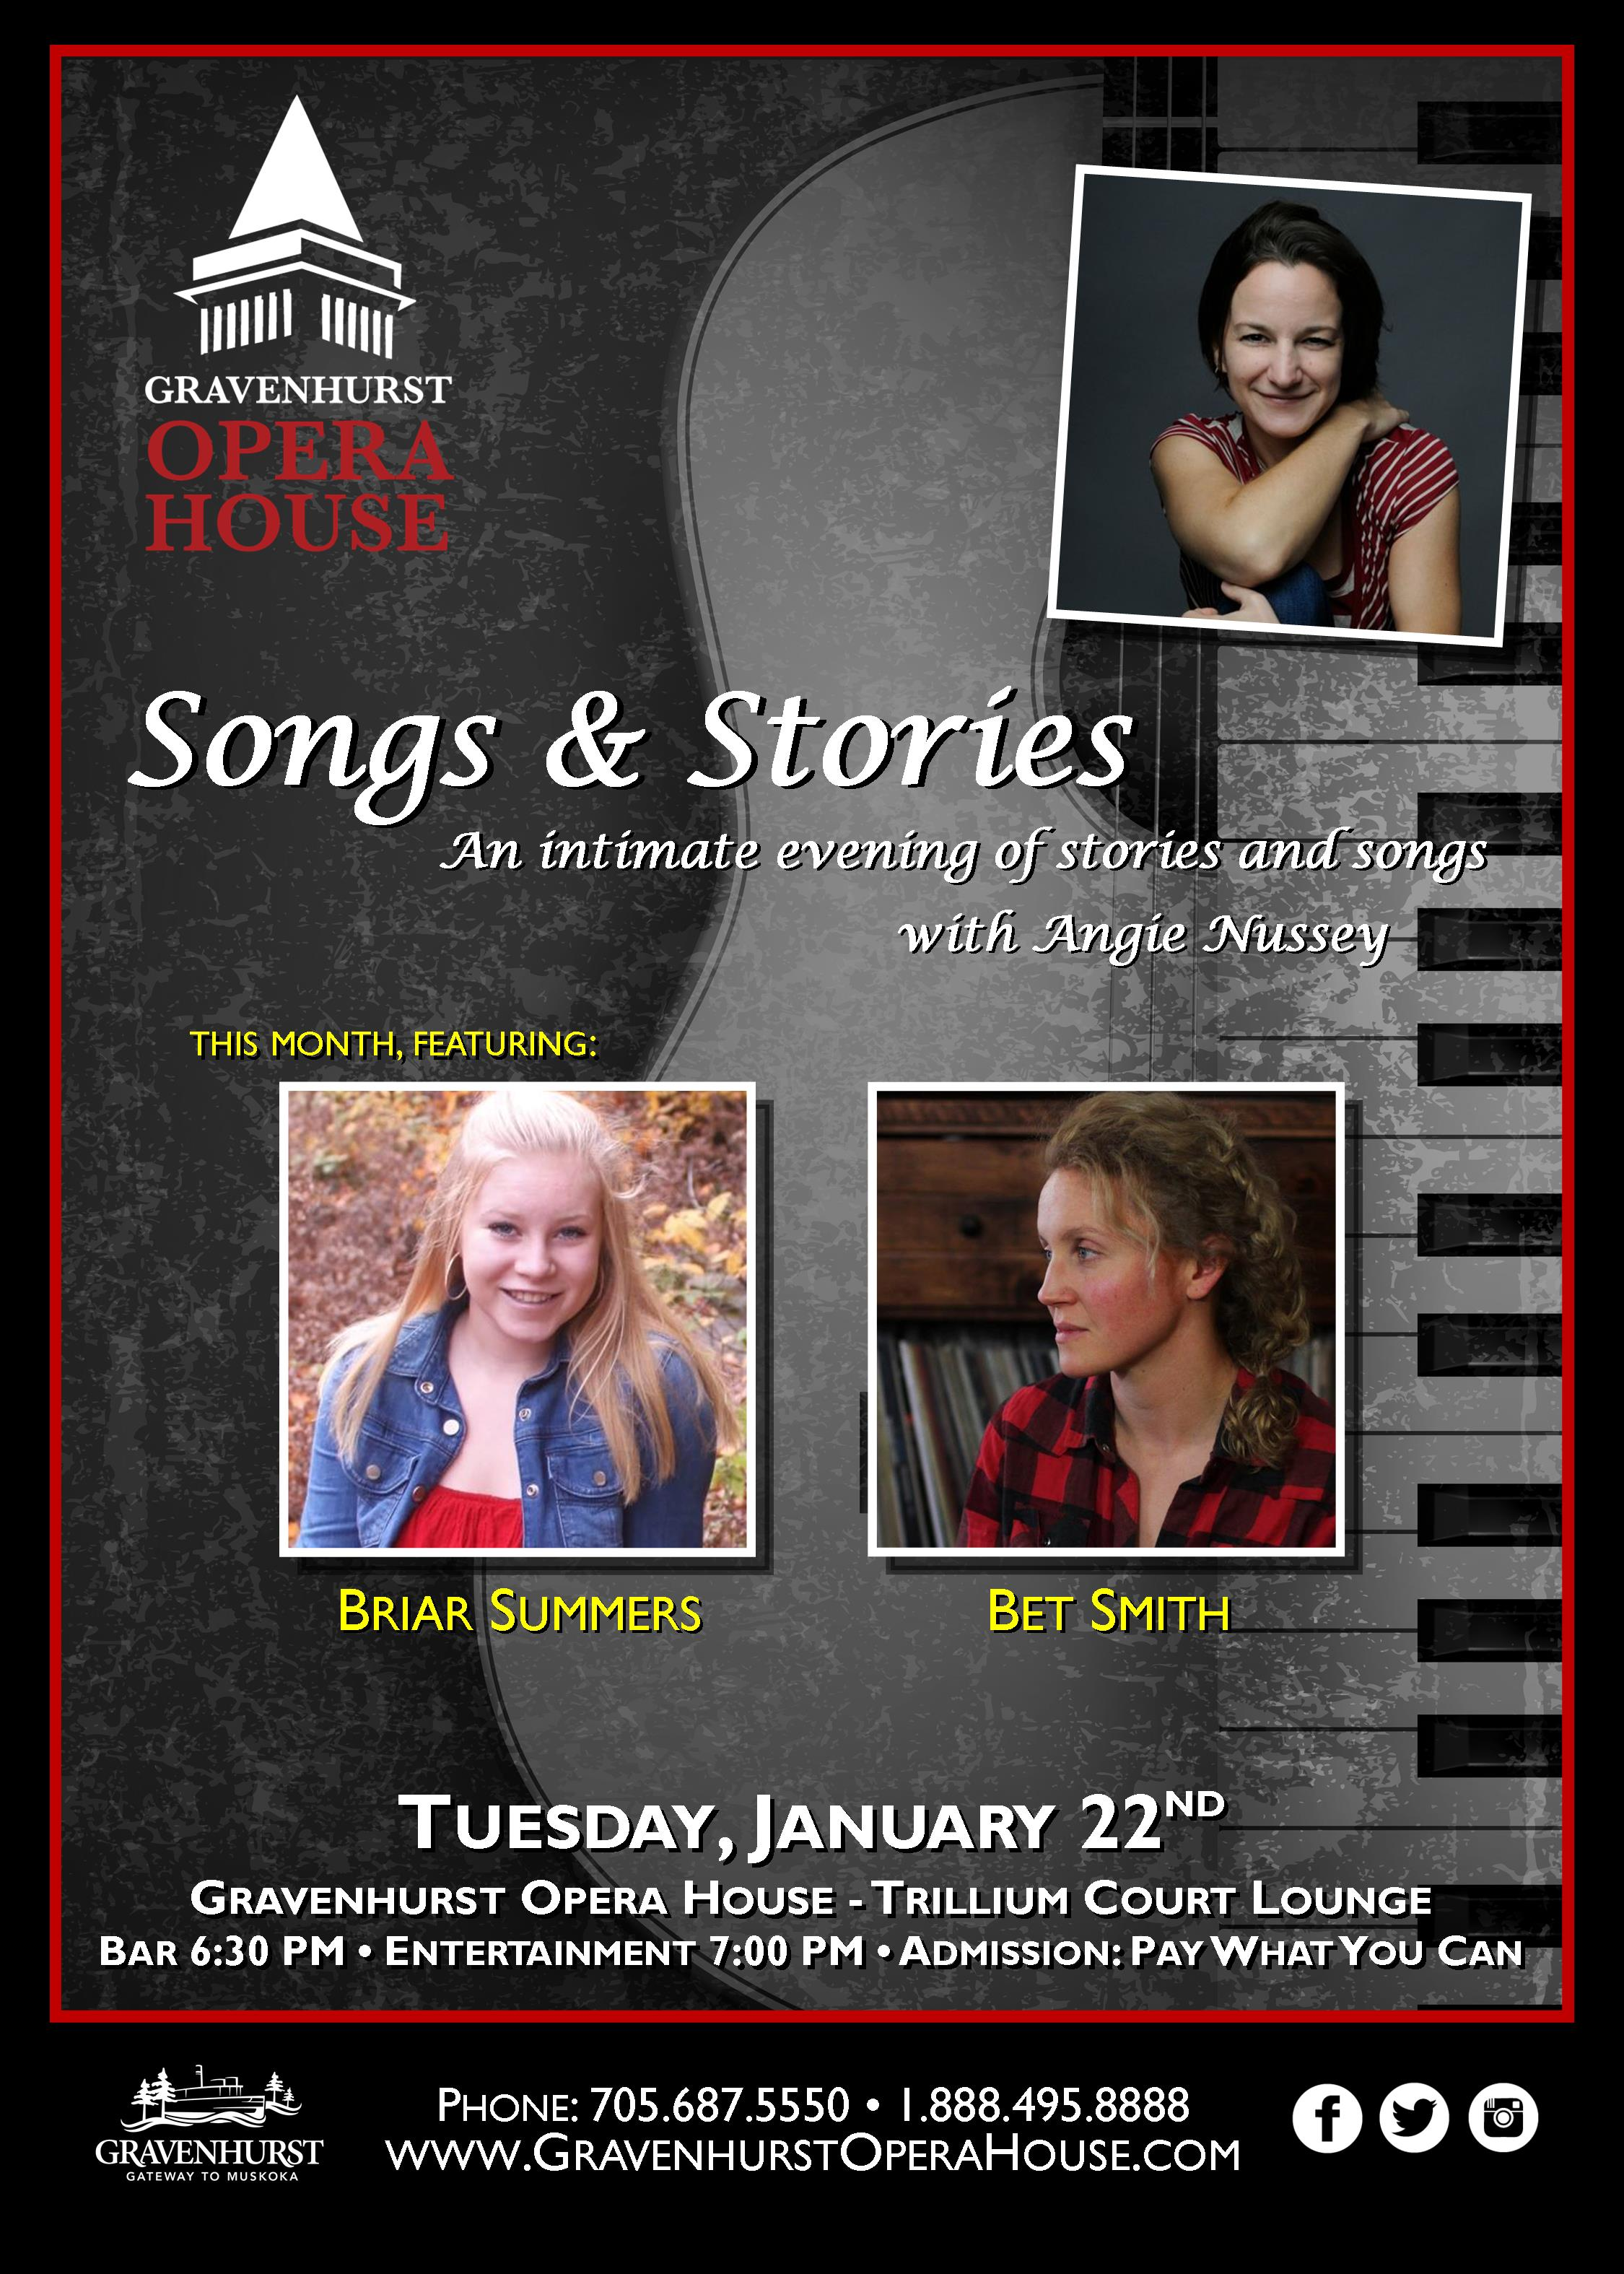 Promotional Poster for the upcoming Songs & Stories concert happening January 22nd